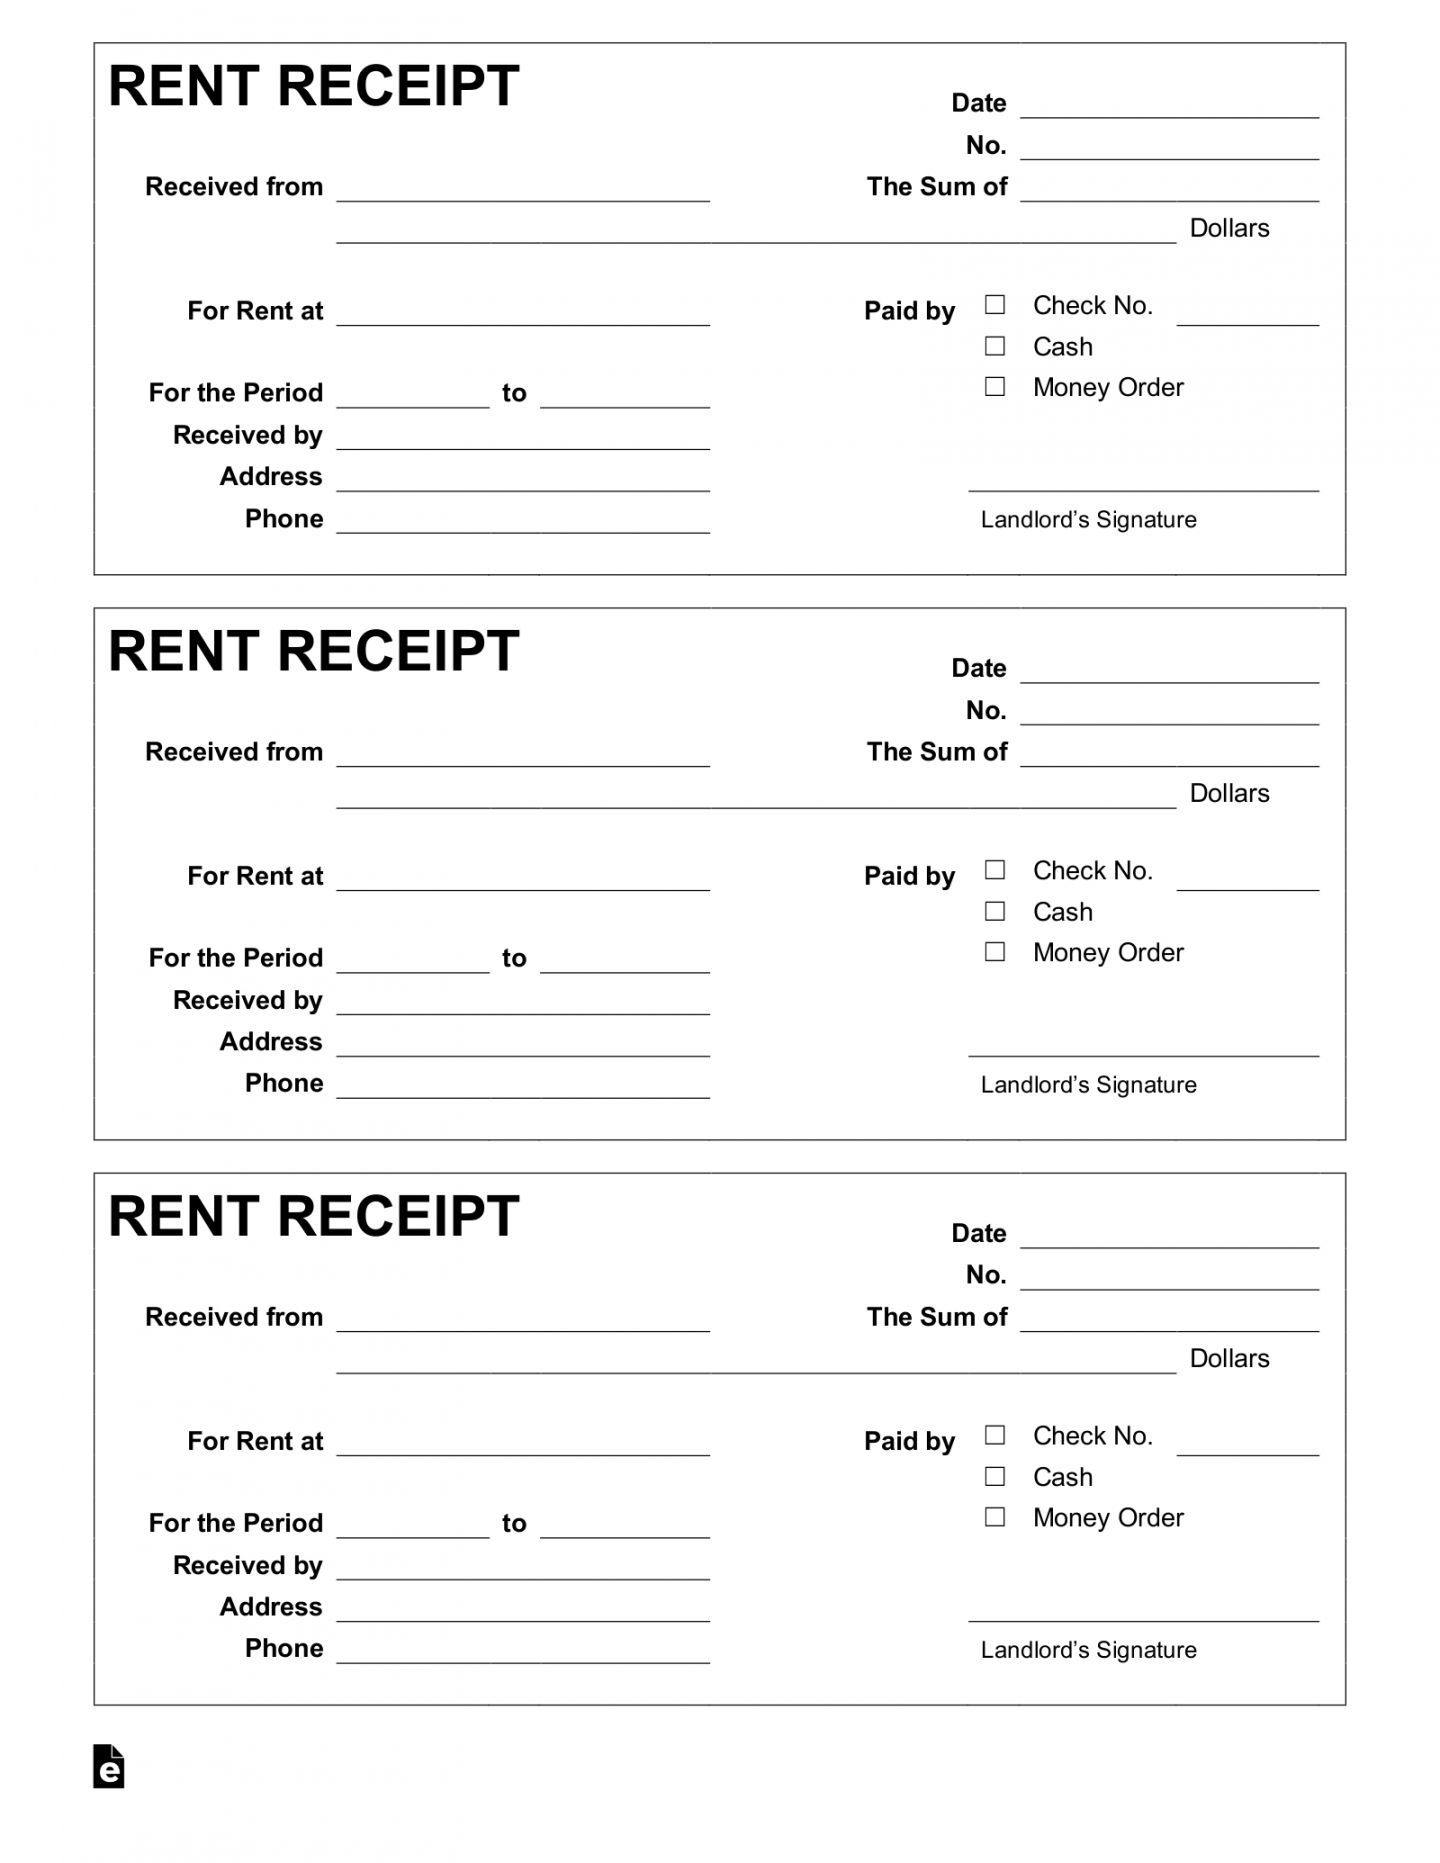 Browse Our Sample Of Apartment Rental Receipt Template Receipt Template Free Receipt Template Receipt